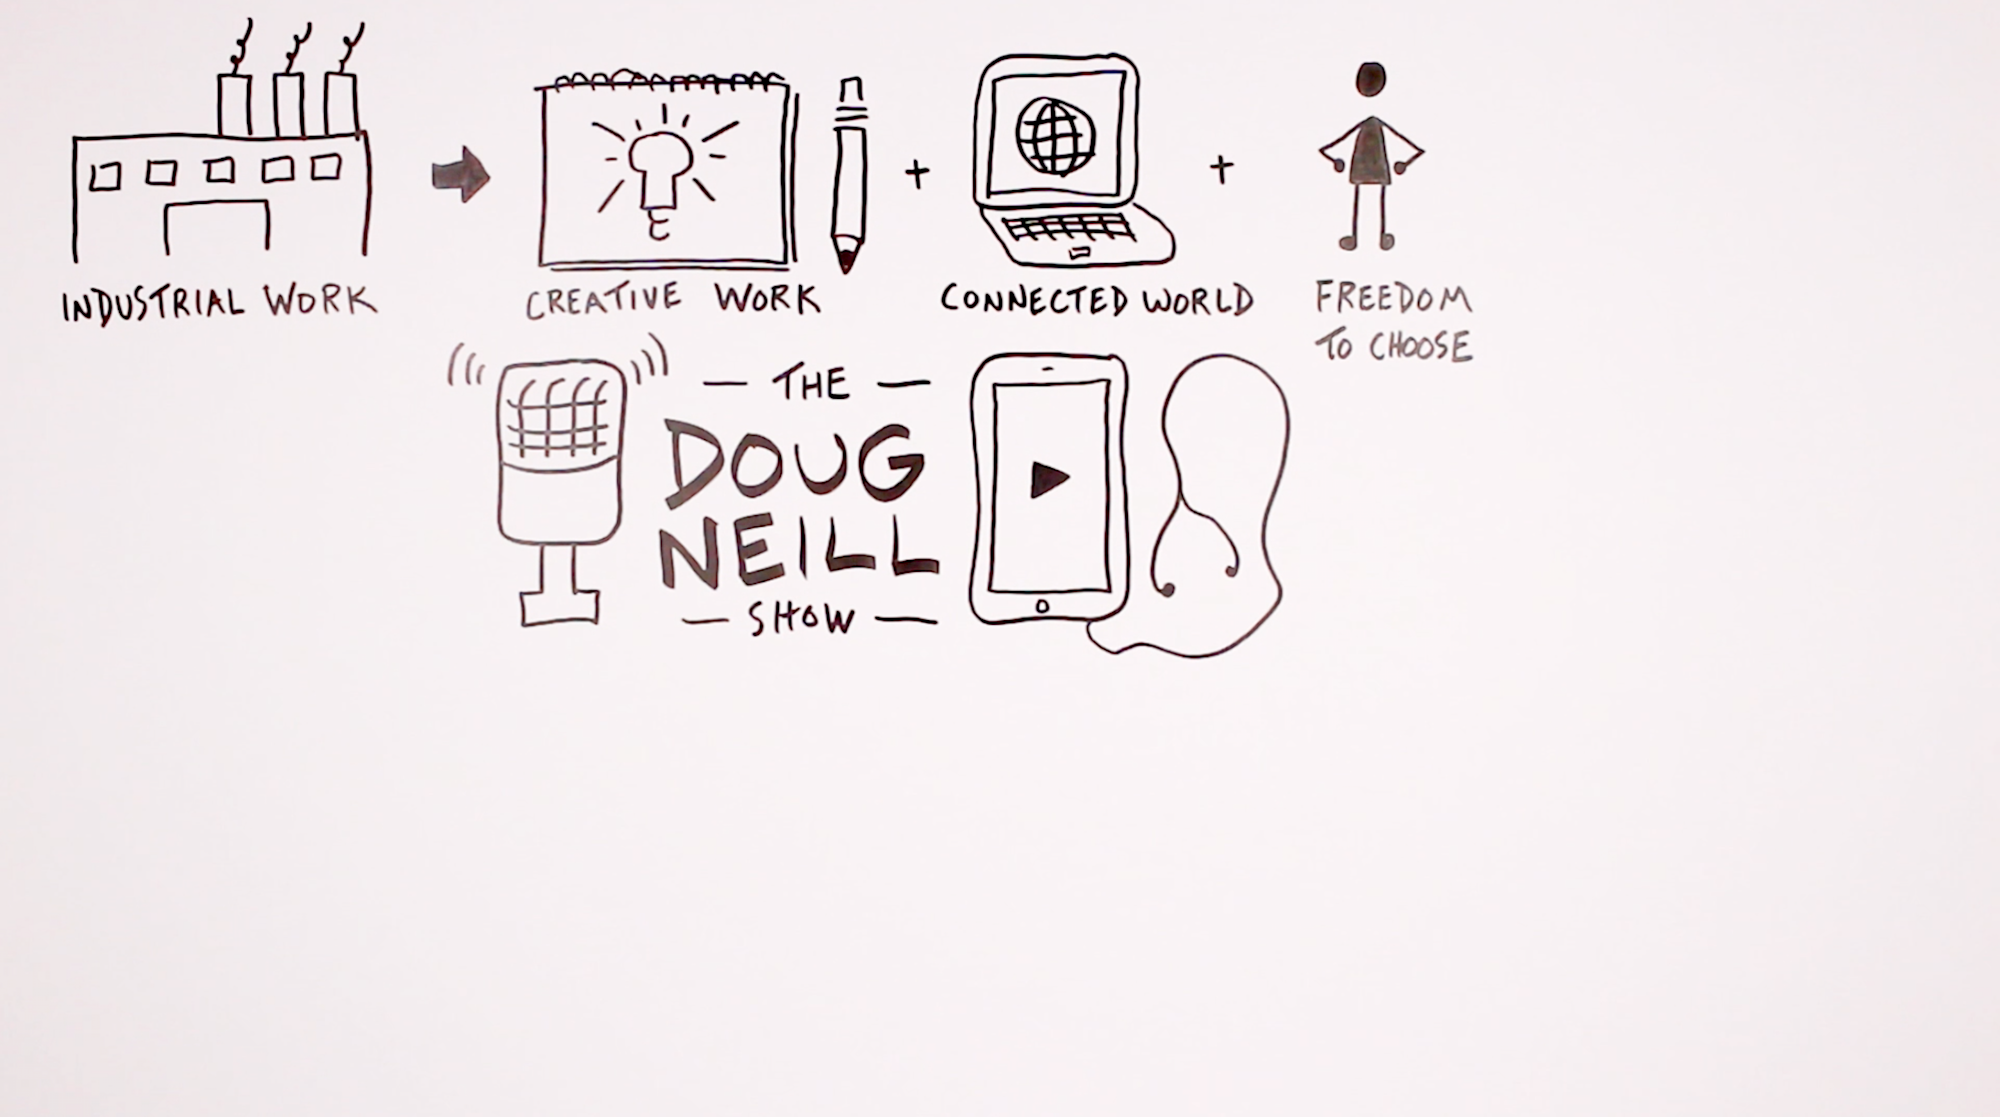 The Shifting World of Work - The Doug Neill Show - Verbal To Visual